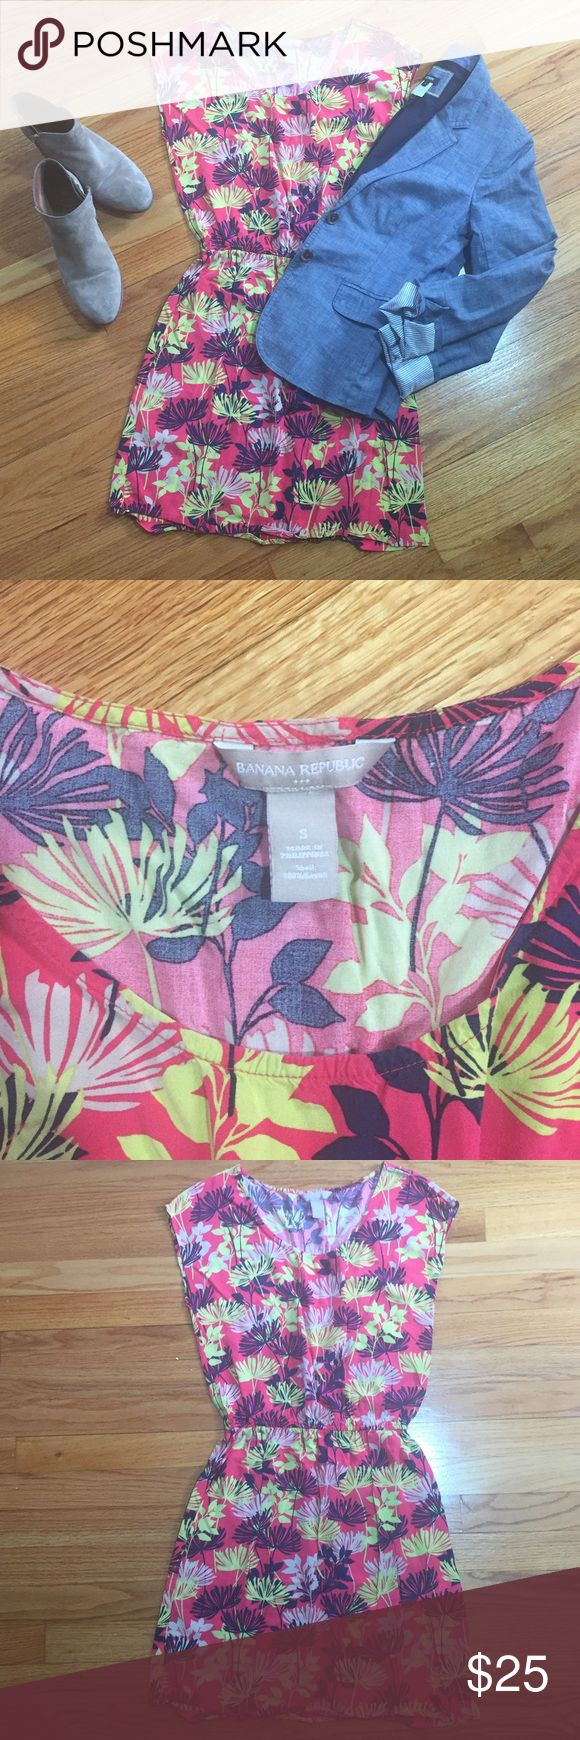 Banana Republic Gorg print Shift Dress Sz S Banana Republic factory Shift Dress in bright bold colors. Cinched in waist for the perfect amount of definition. Flawless condition!🌸🌸🌼 Banana Republic Dresses